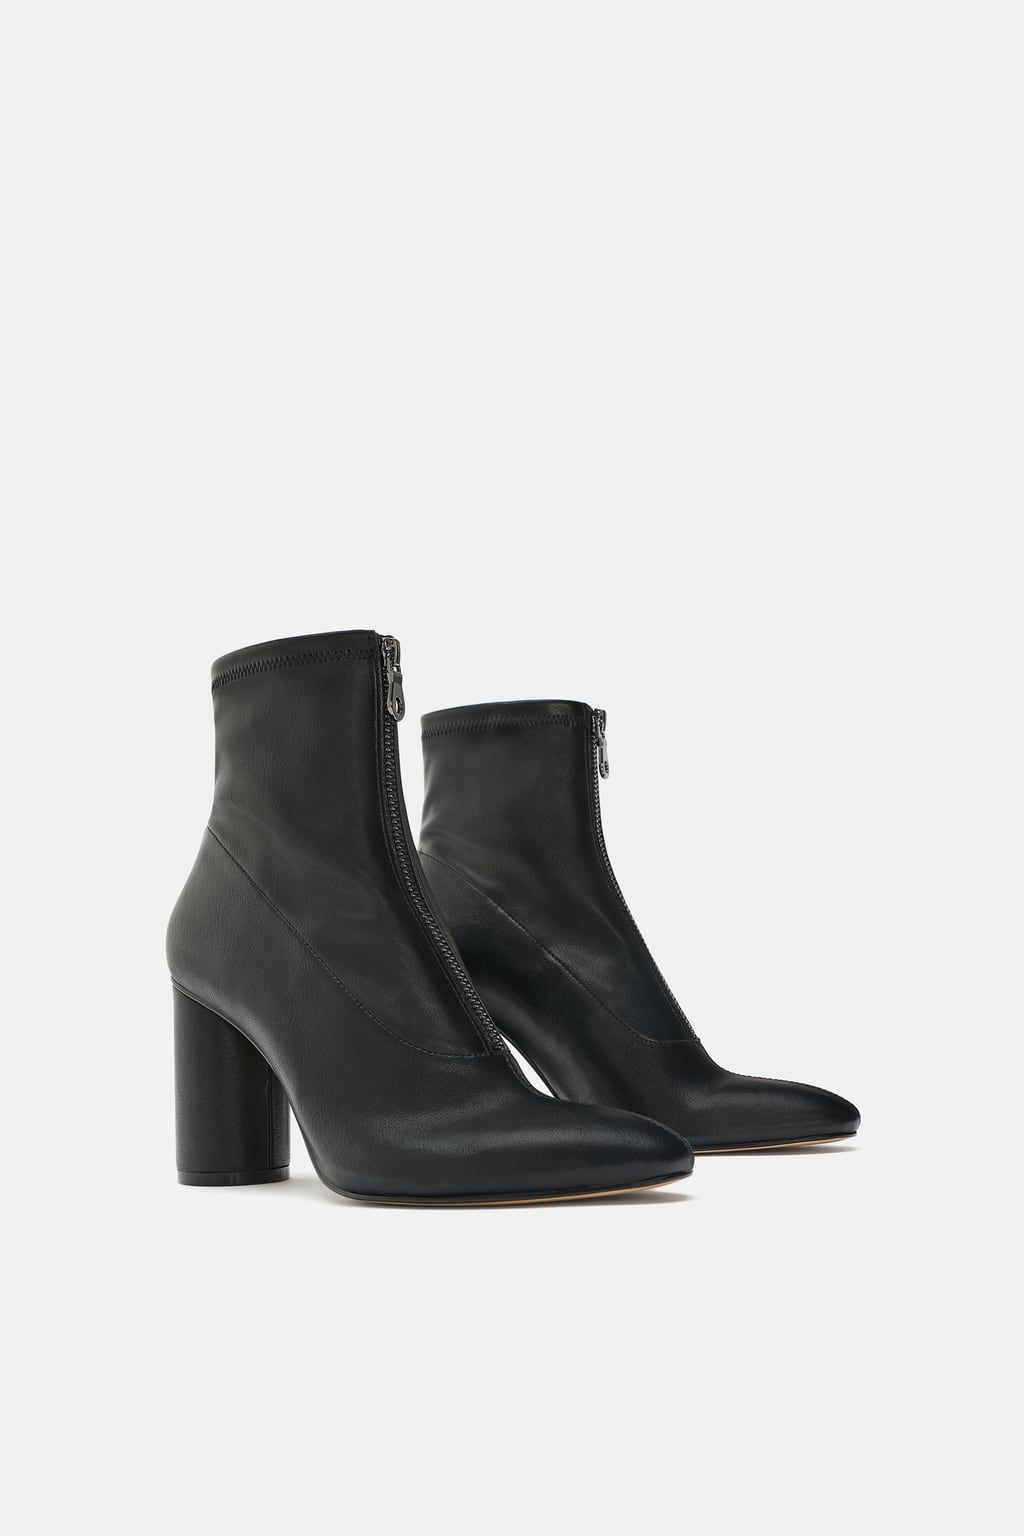 Heeled stretch ankle boots | Zara ankle